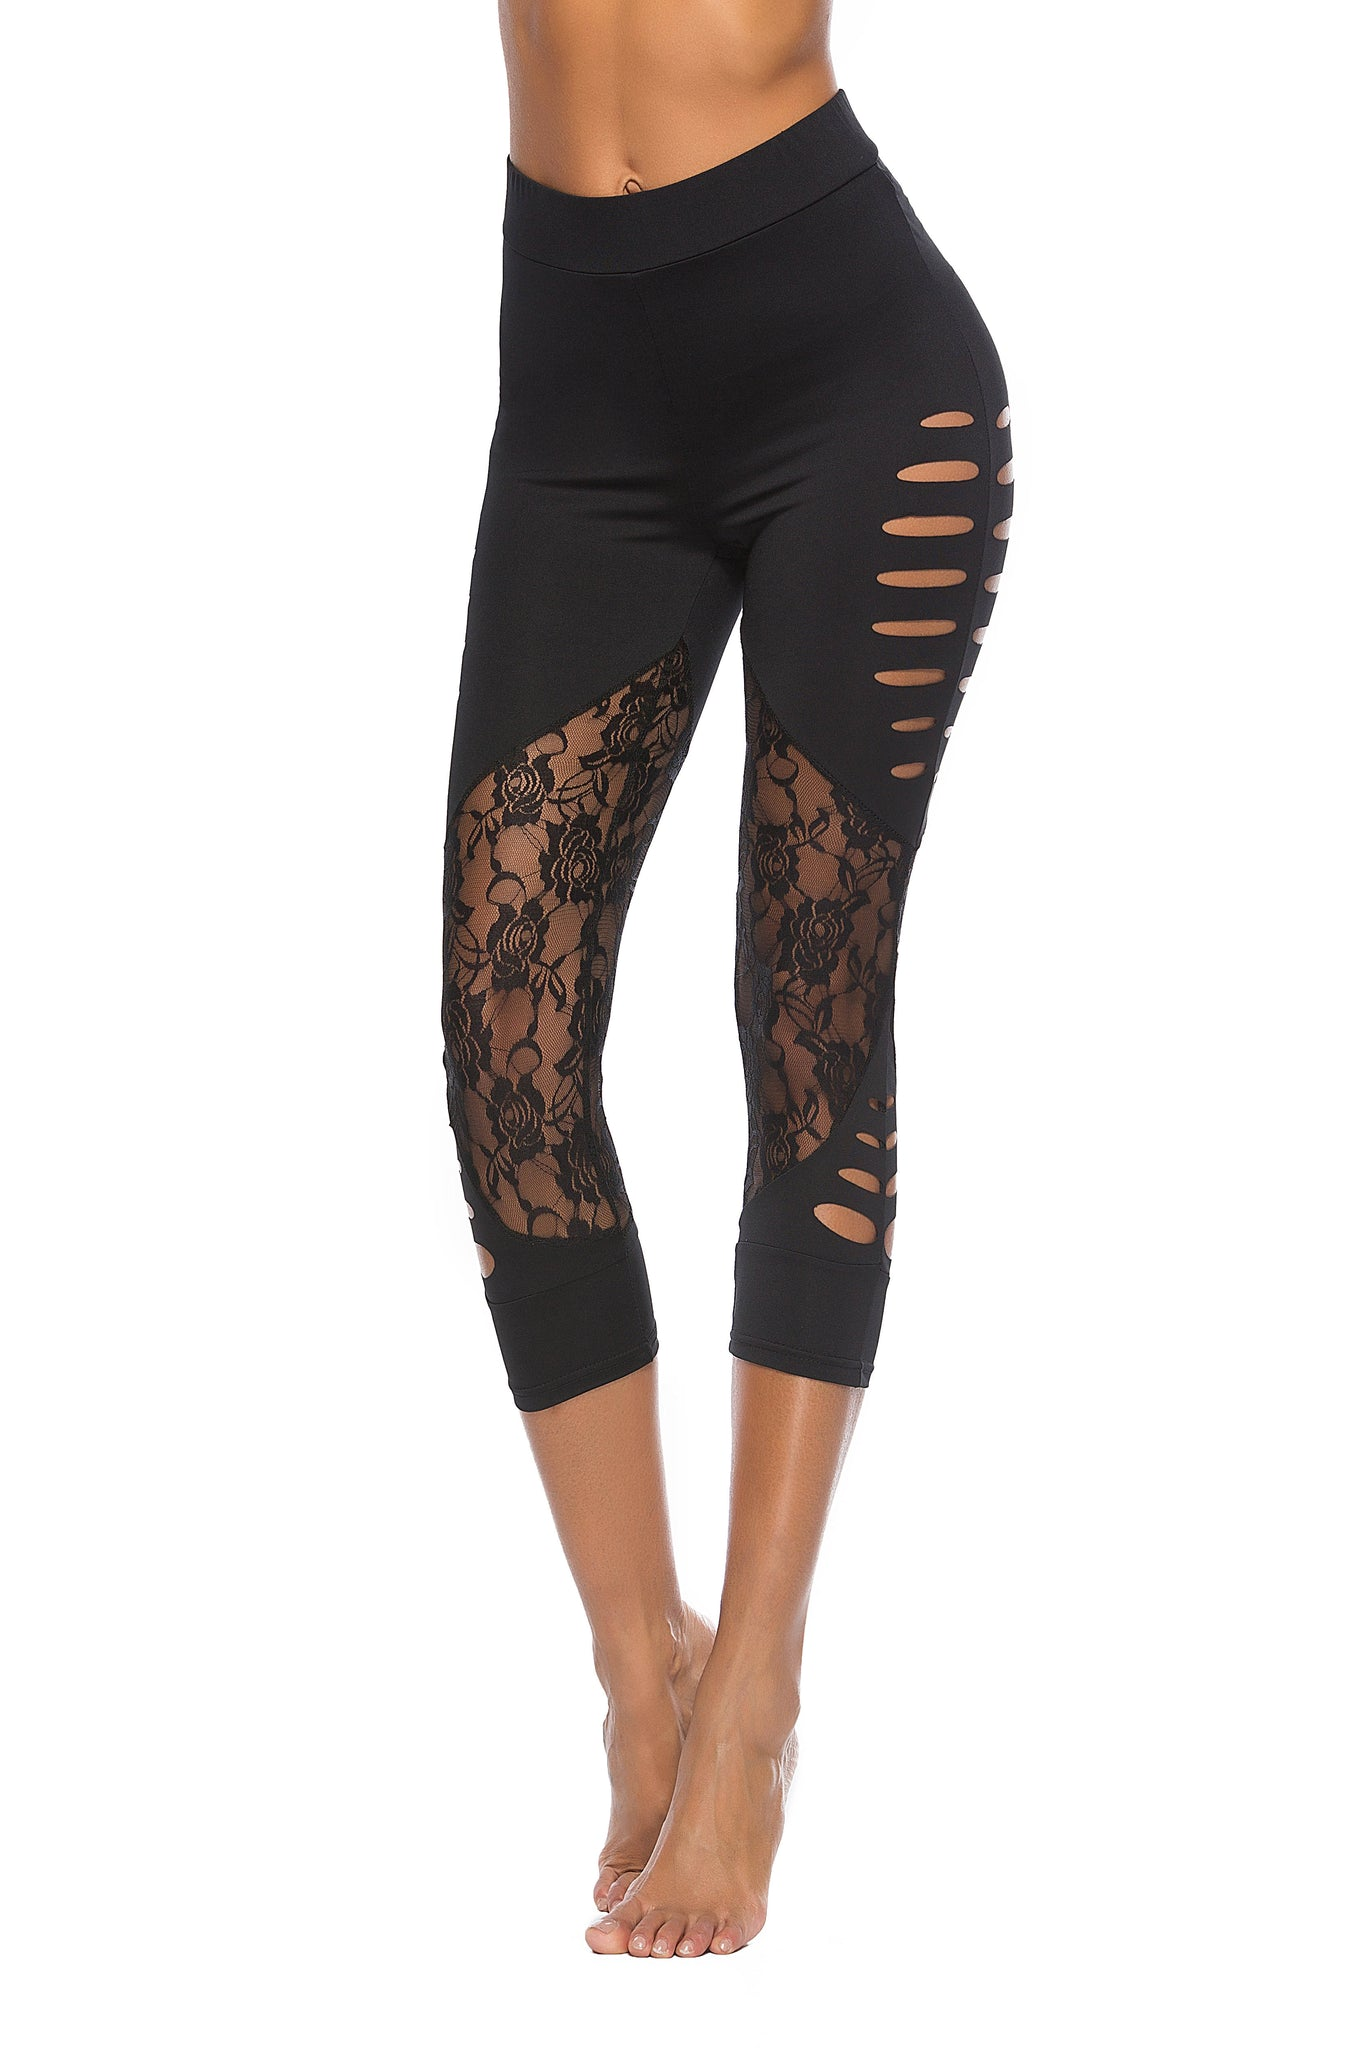 2018 Modified Body Lace Patch Hollow Women Fitness Leggings Mid-Calf Casual Black Summer Spring Legging - NaomisStore.com